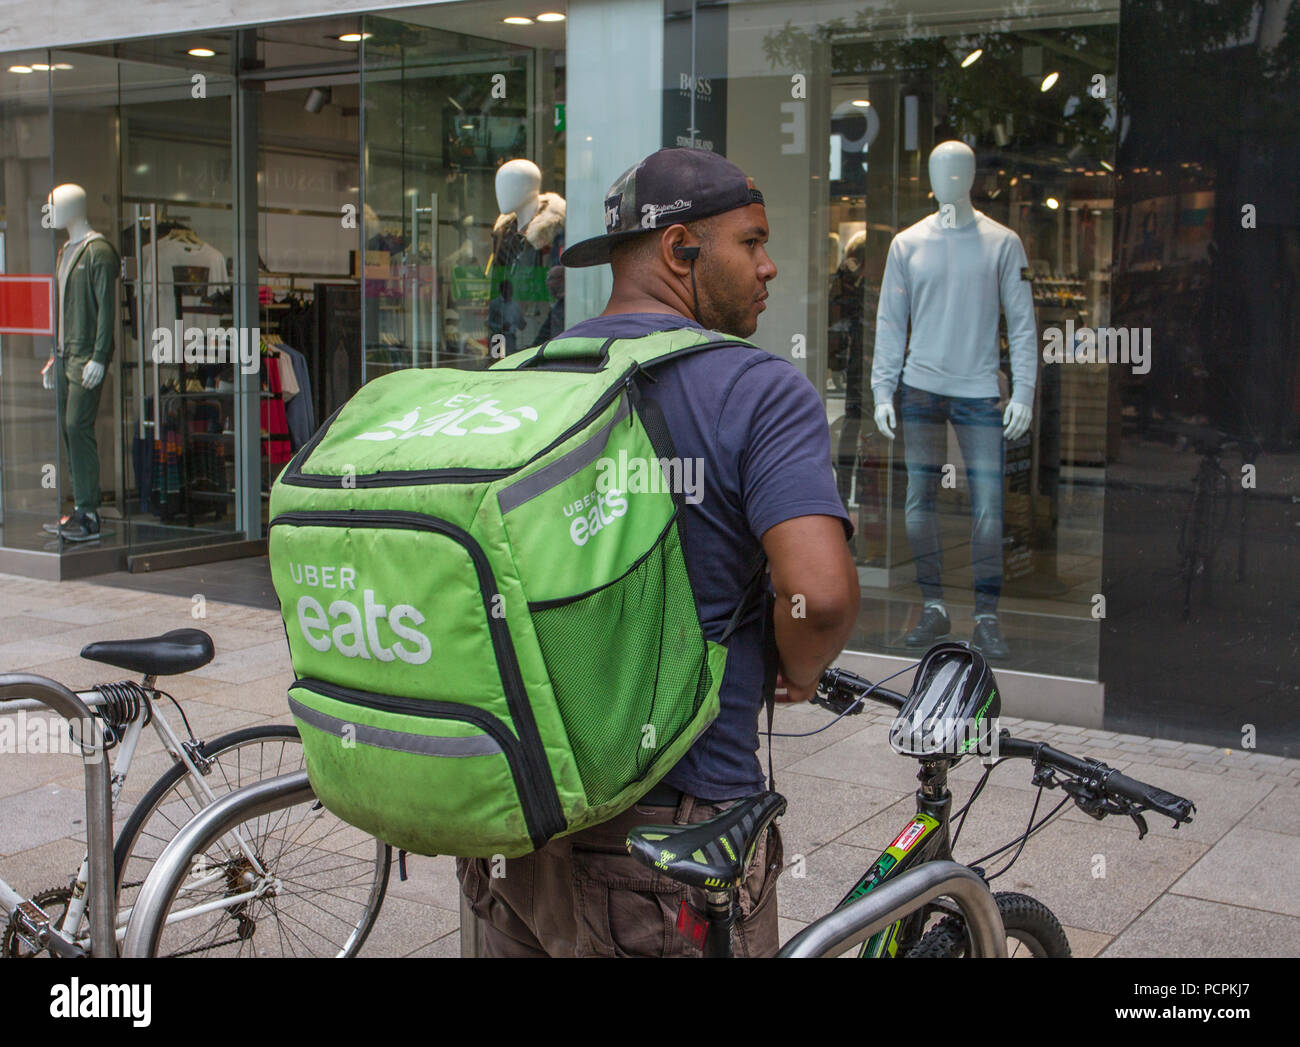 Uber Eats, an American online food ordering and delivery; cyclist in Fishergate, Preston, Lancashie, UK Stock Photo